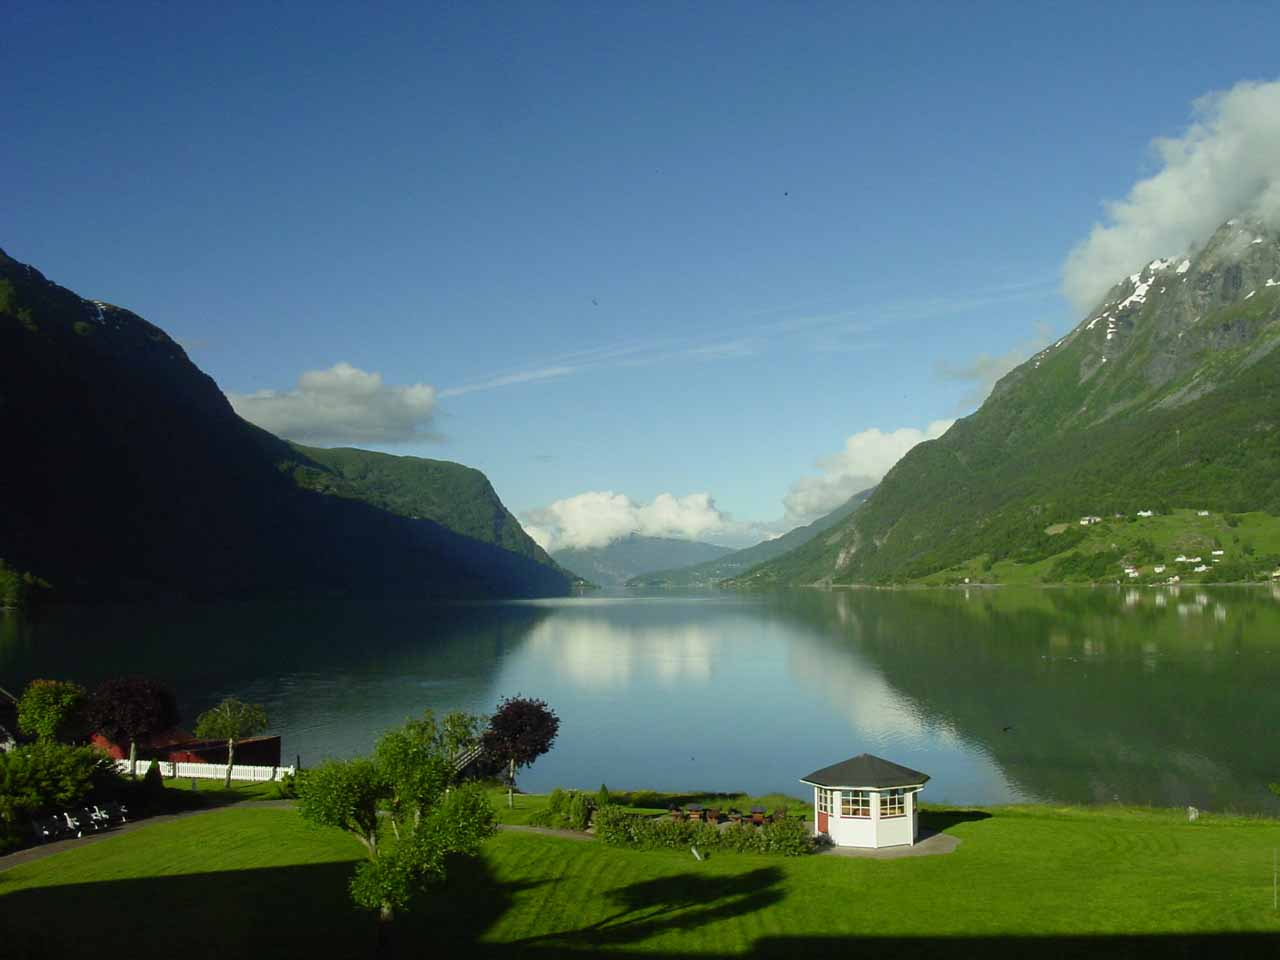 This was the view of beautiful Lustrafjorden from our hotel in Skjolden when we awoke to fine weather the next morning